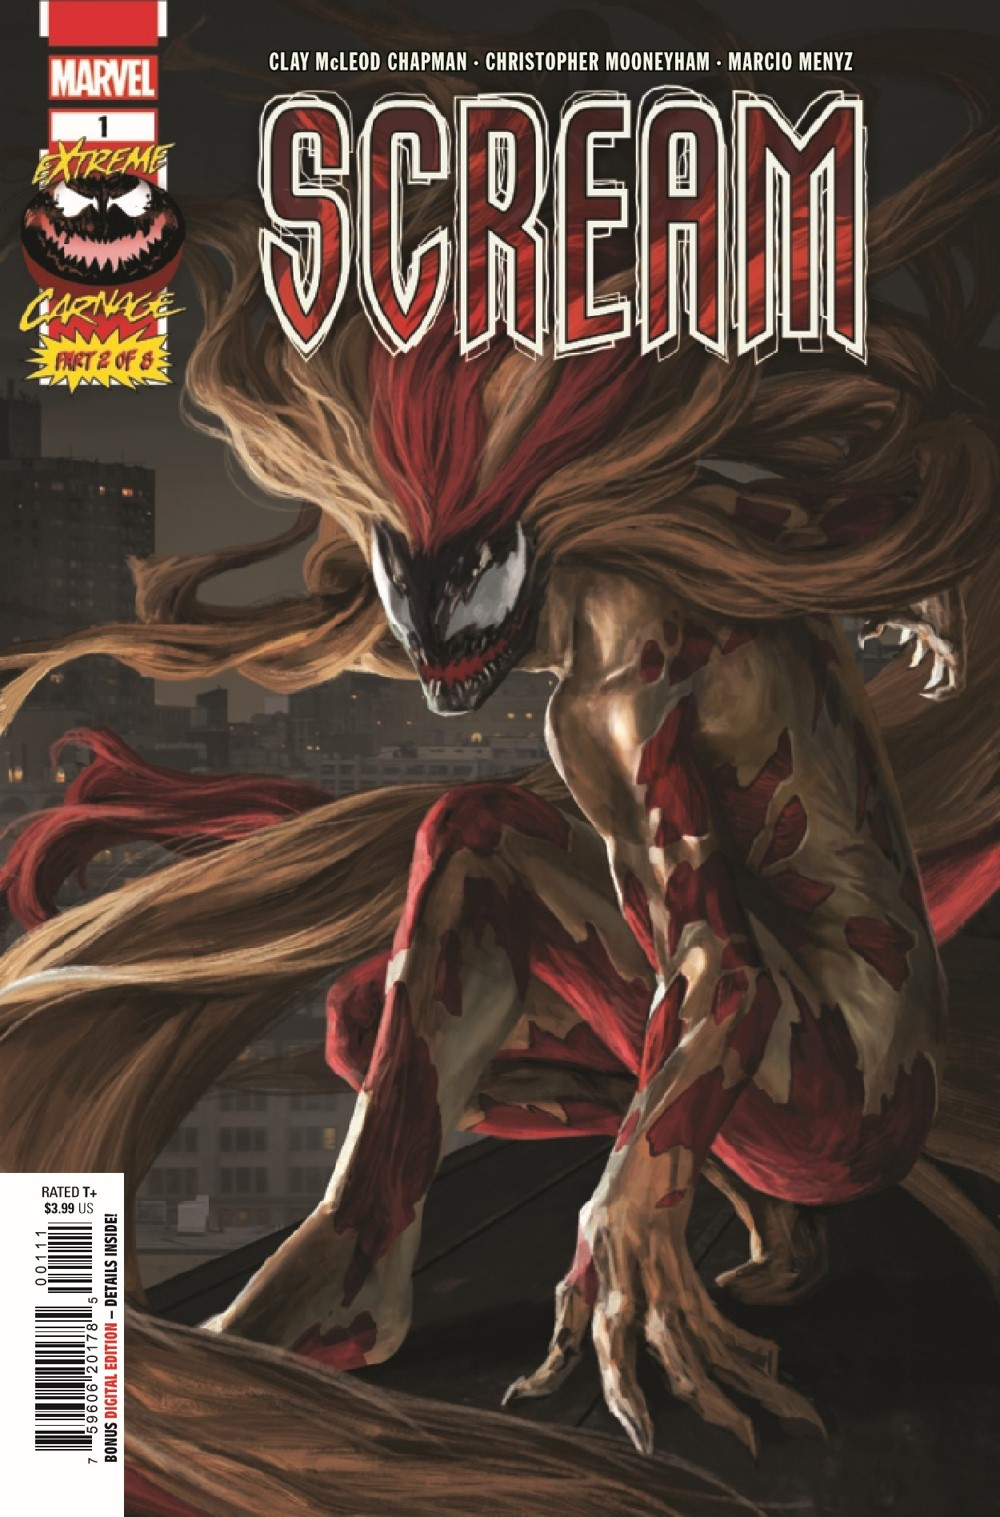 EXTCARNSC2021001_Preview-1 ComicList Previews: EXTREME CARNAGE SCREAM #1